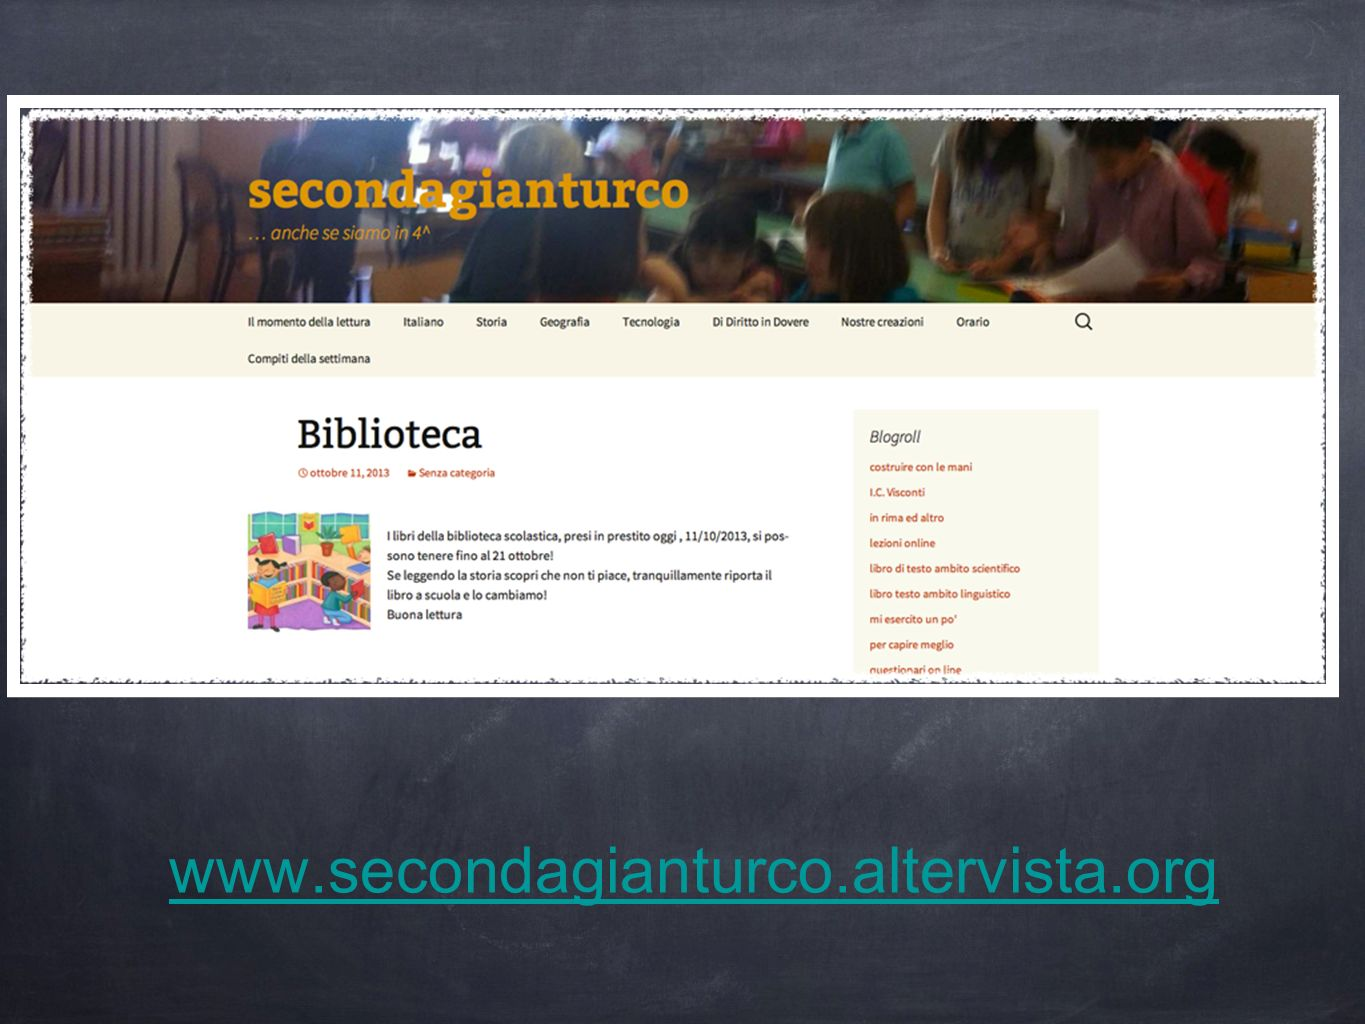 www.secondagianturco.altervista.org